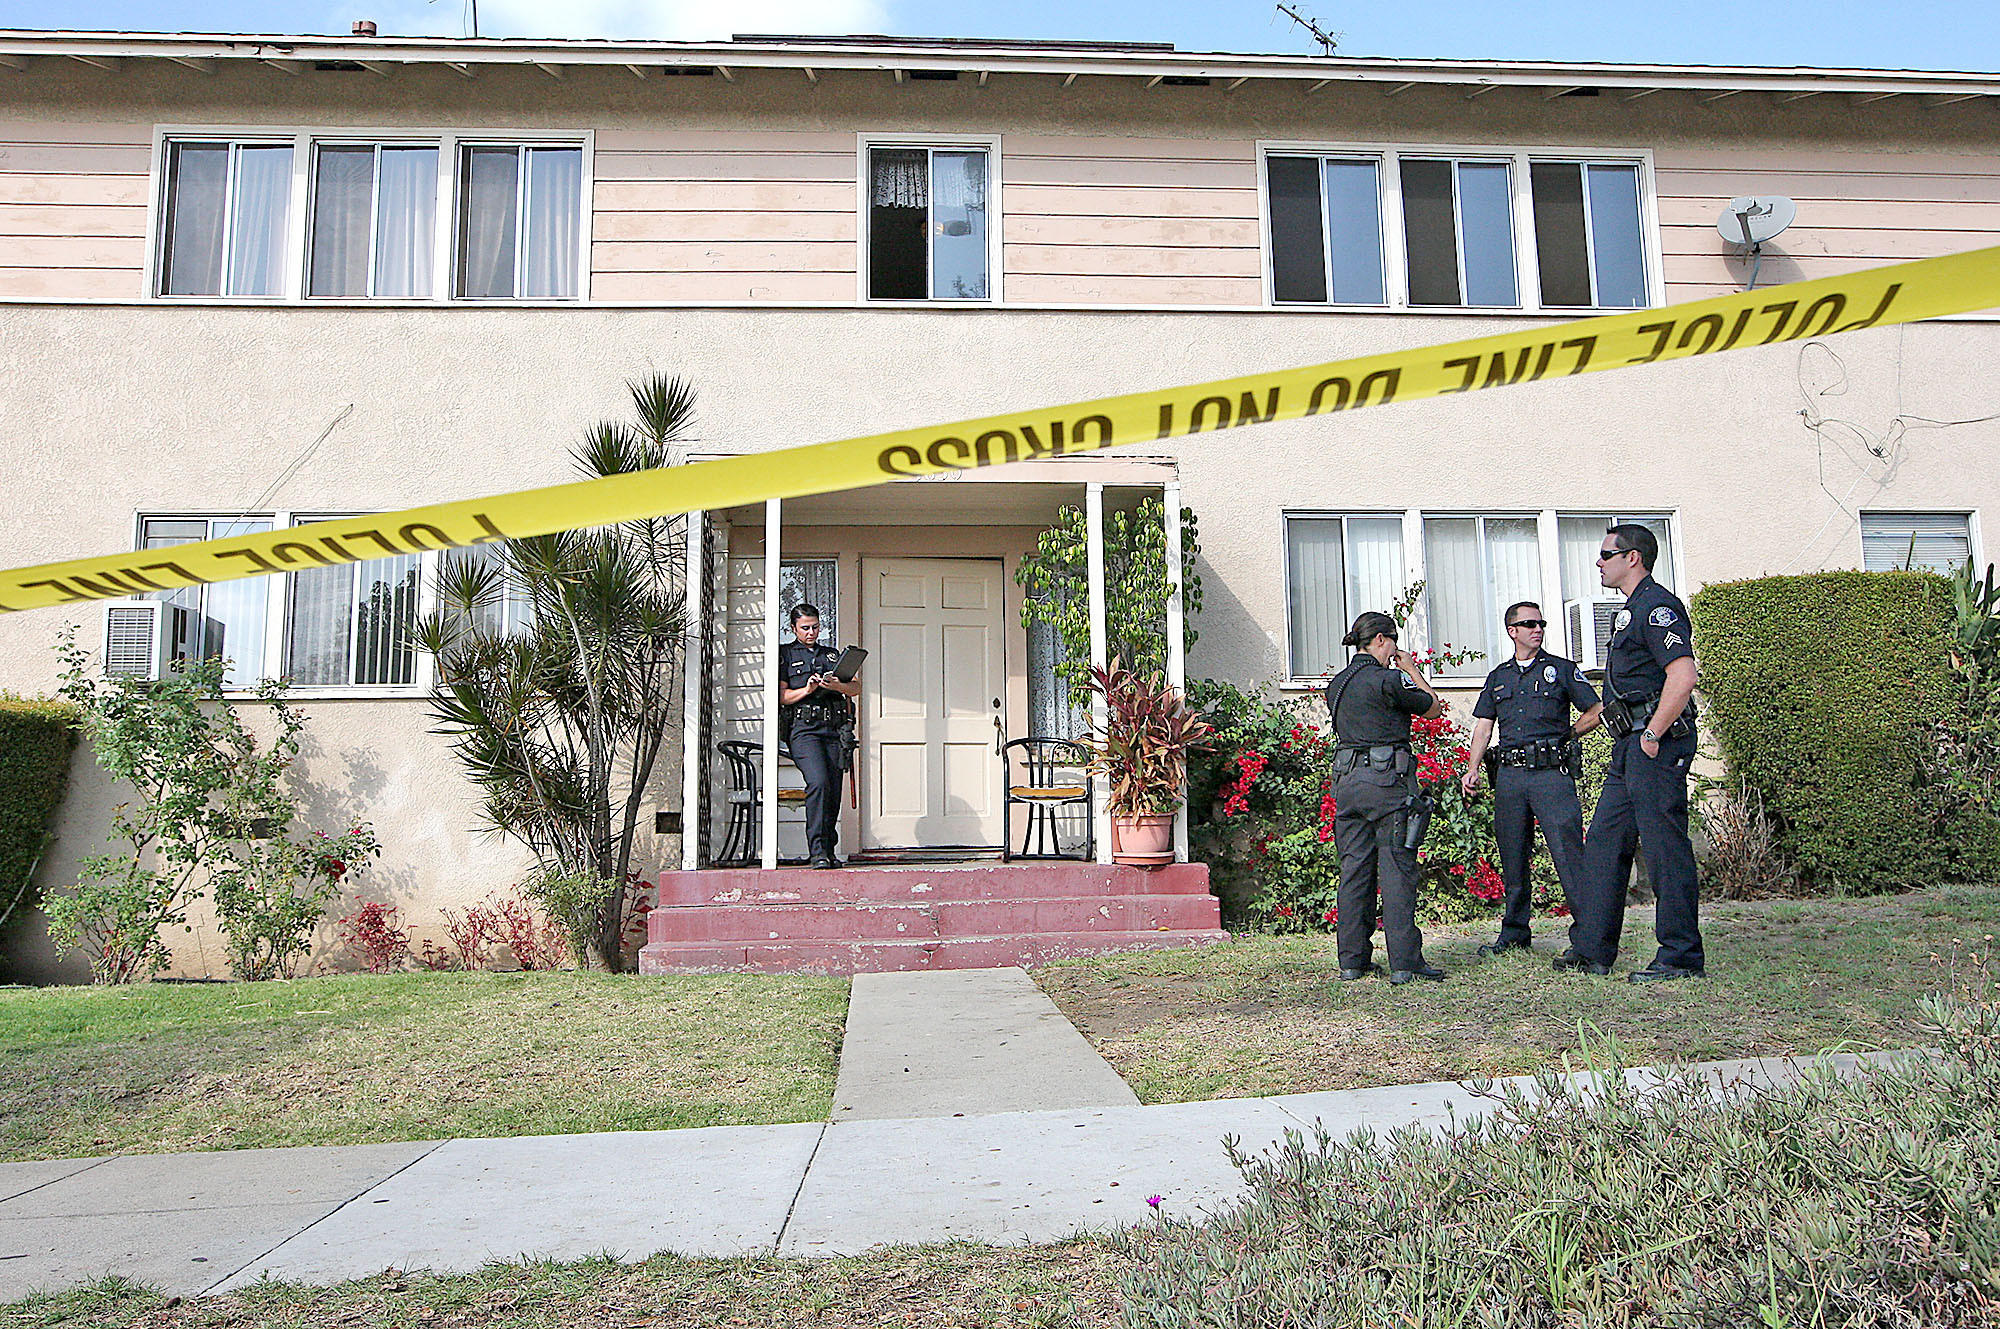 Glendale police investigate the scene of a homicide at 1830 Irving Ave. on Monday, November 18, 2013.